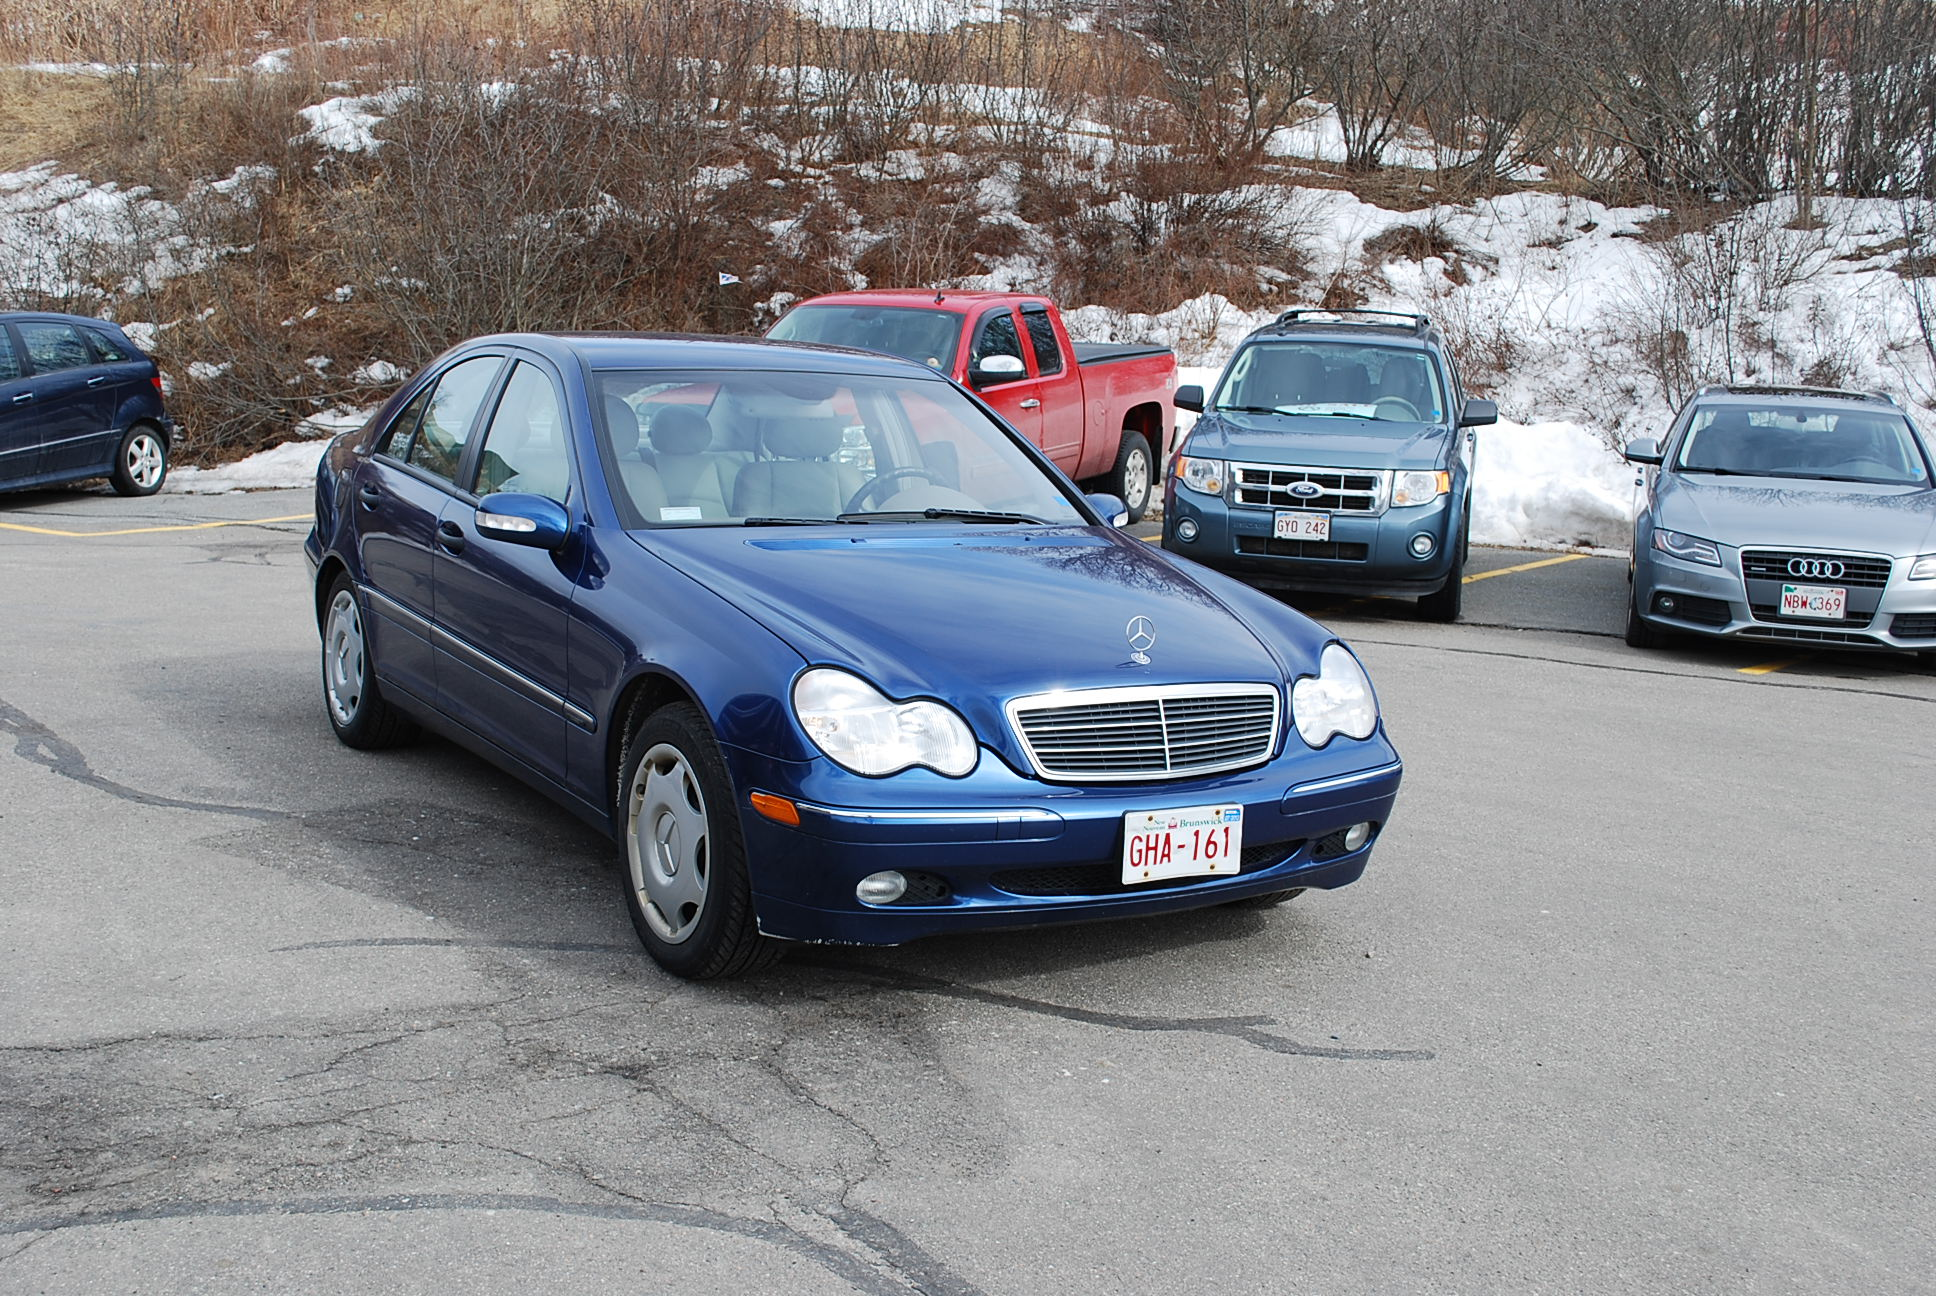 used 2004 mercedes benz c240 4matic for sale in saint john nb. Black Bedroom Furniture Sets. Home Design Ideas